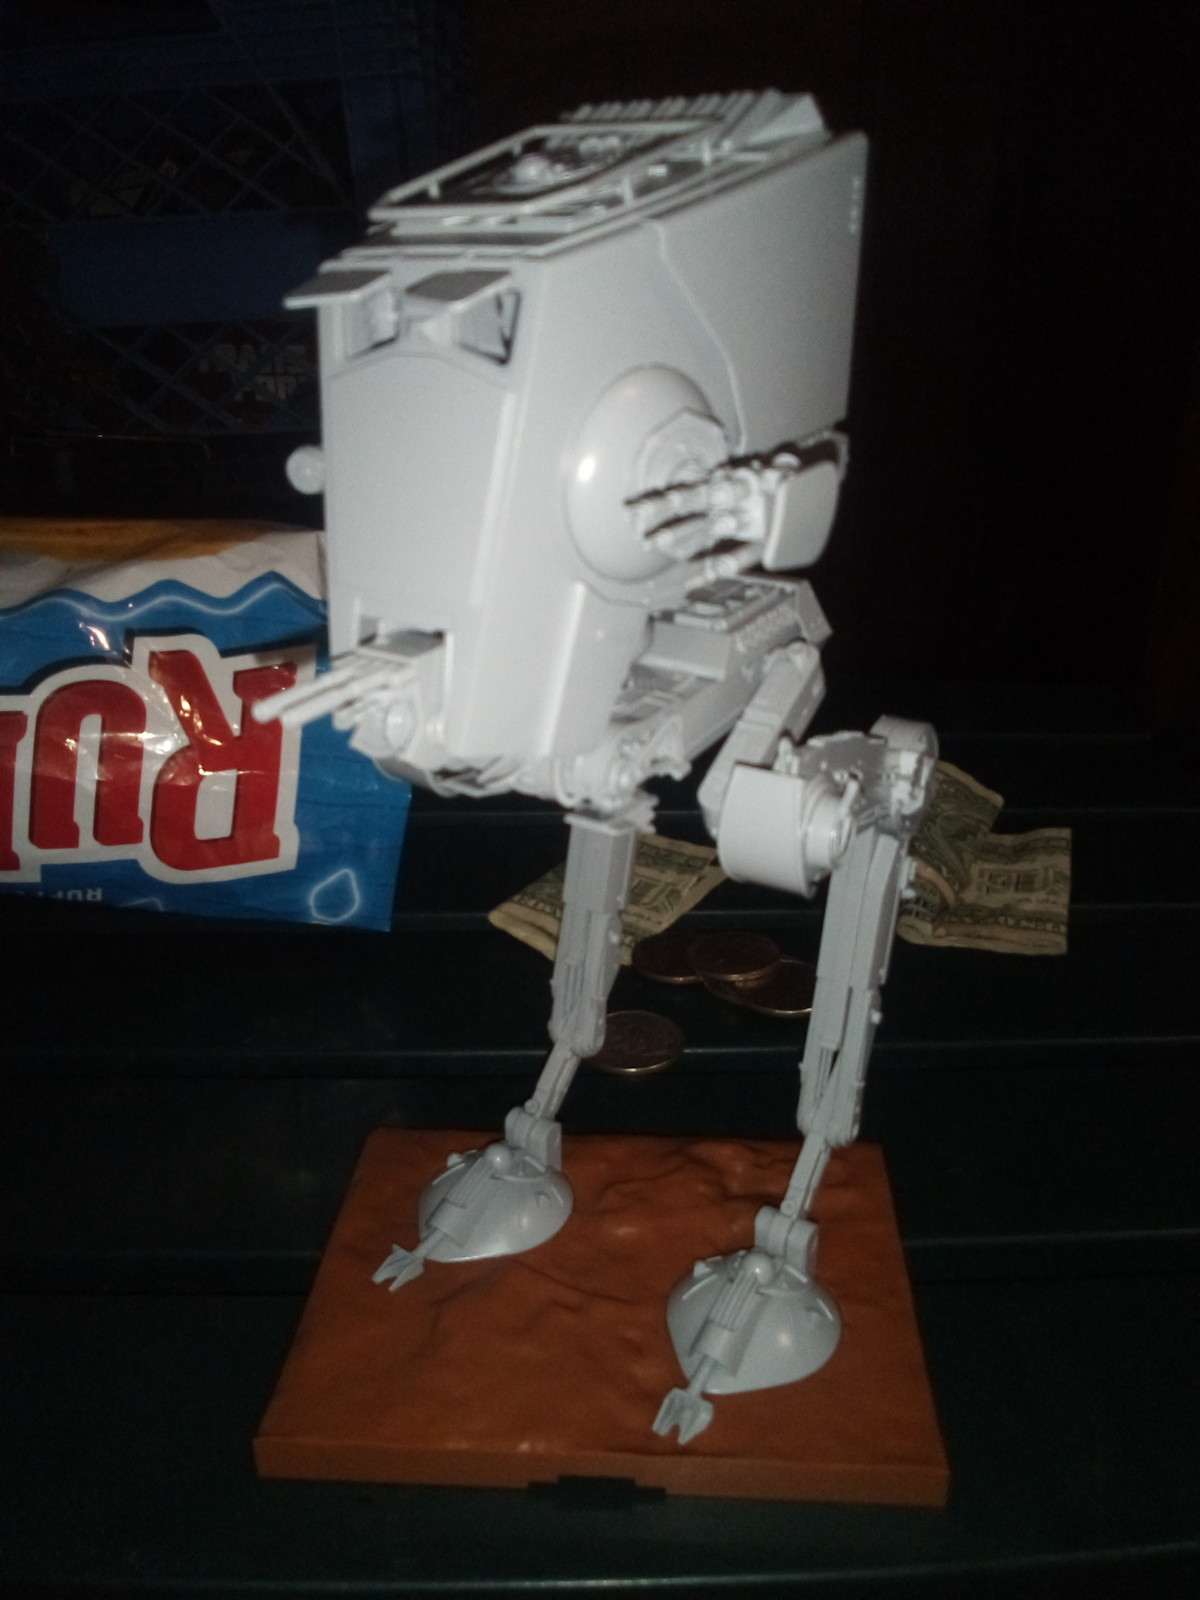 At-st model. 30 pieces for each leg, 22 for neck & torso, 48 for head and guns... https://www.bigbadtoystore.com/Product/VariationDetails/42393